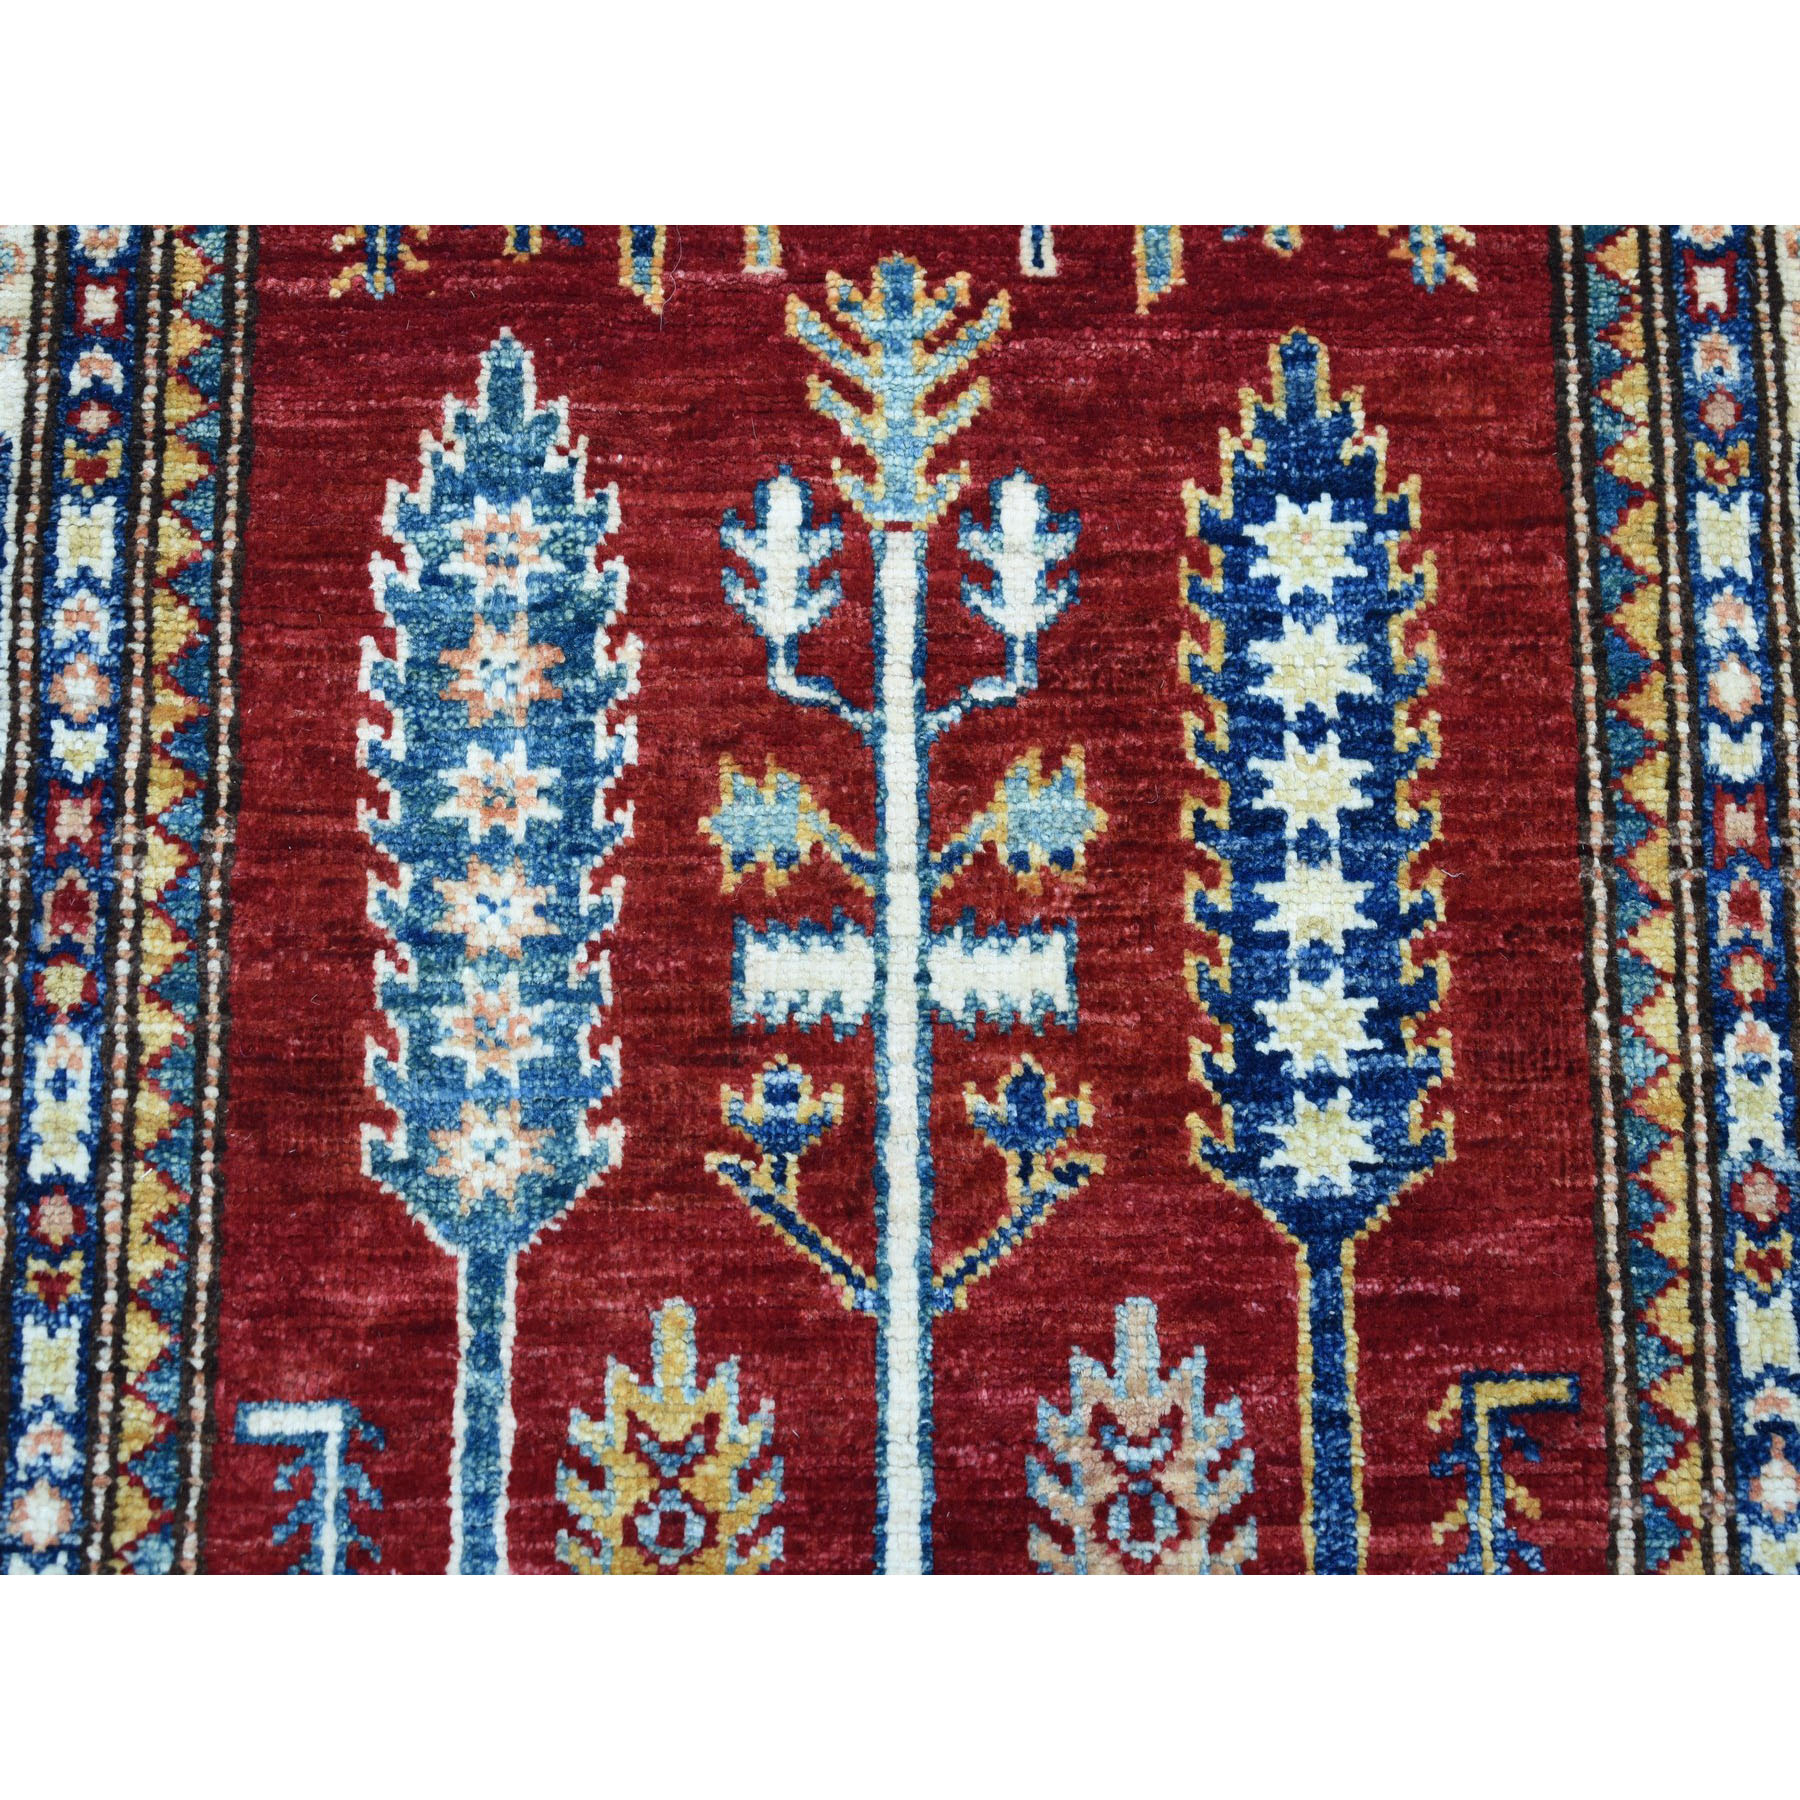 2-9 x4-5  Red Super Kazak Pure Wool Geometric Design Hand-Knotted Oriental Rug